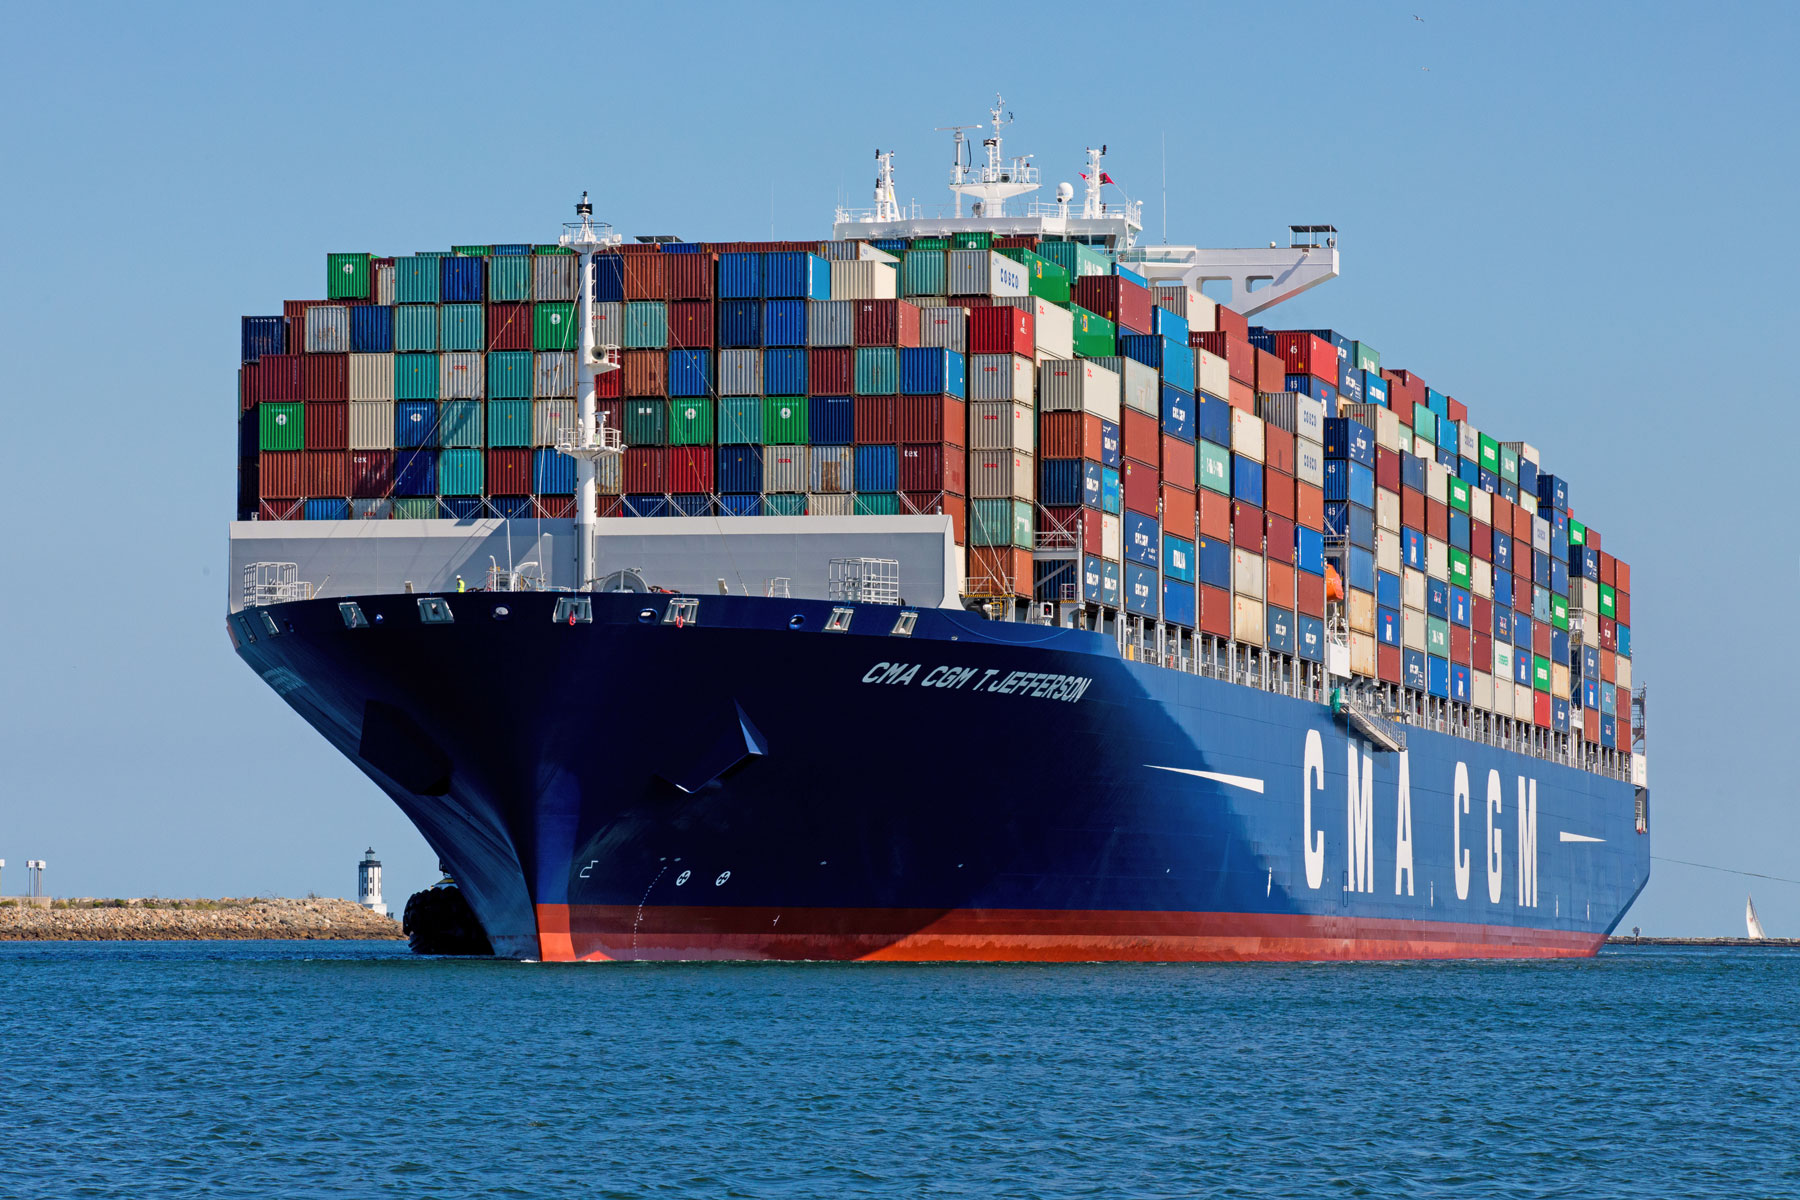 CMA CGM Thomas Jefferson